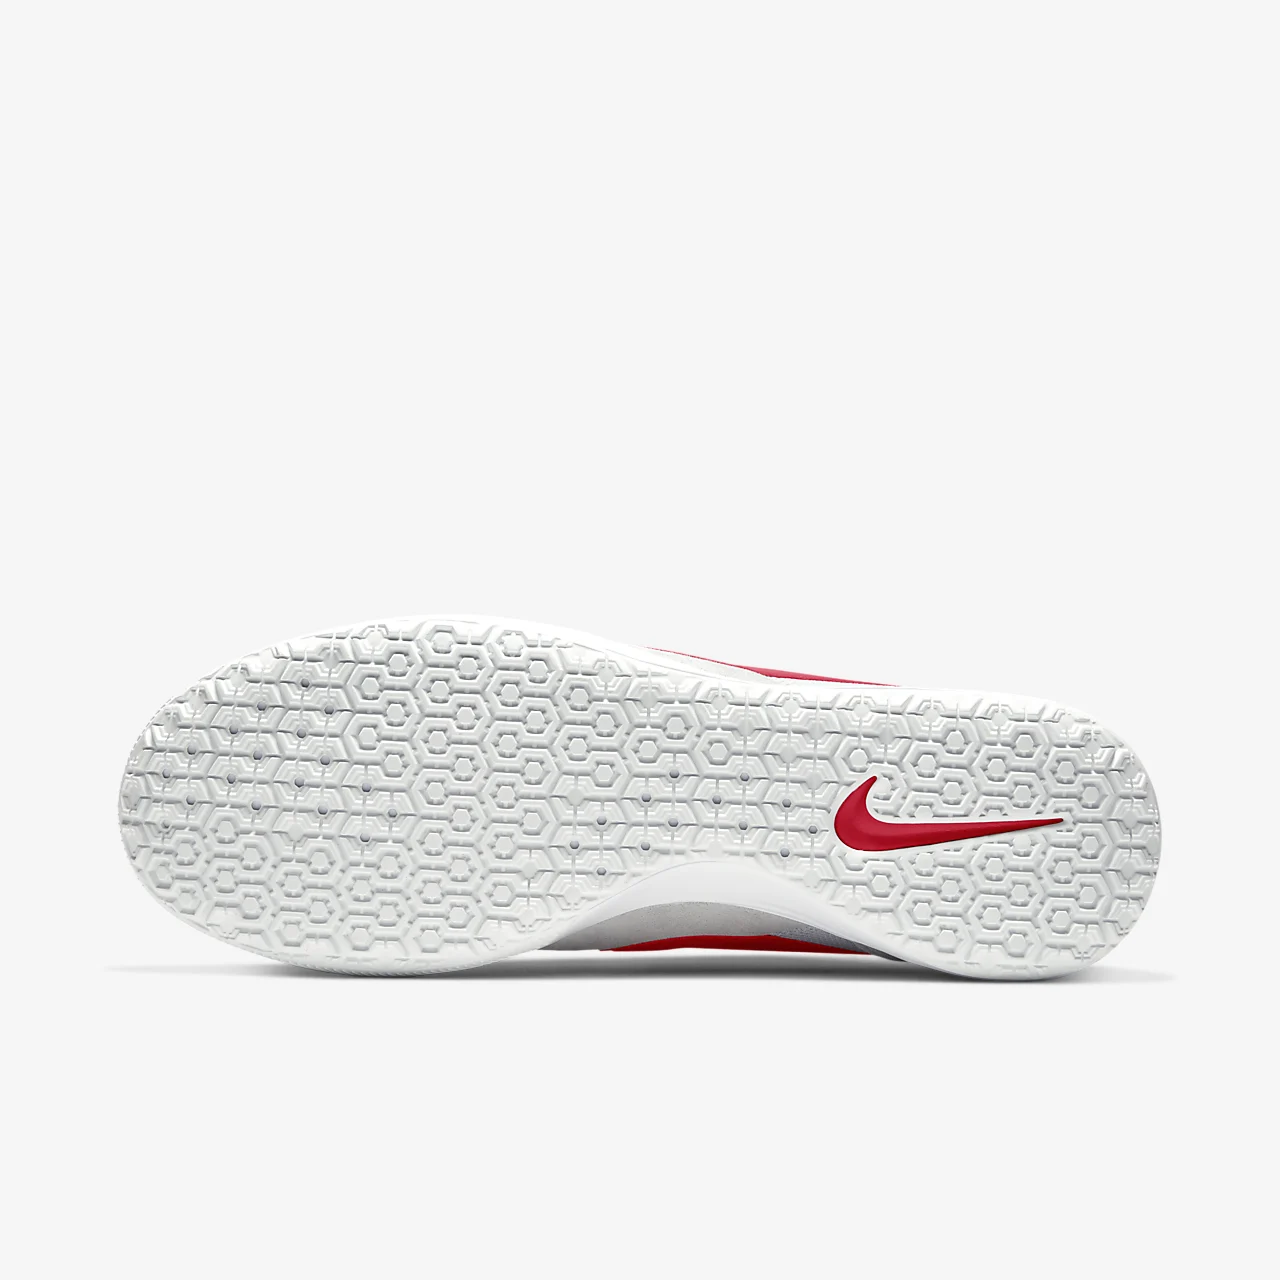 유럽직배송 나이키 NIKE Nike Premier 2 Sala IC Indoor/Court Football Shoe AV3153-061